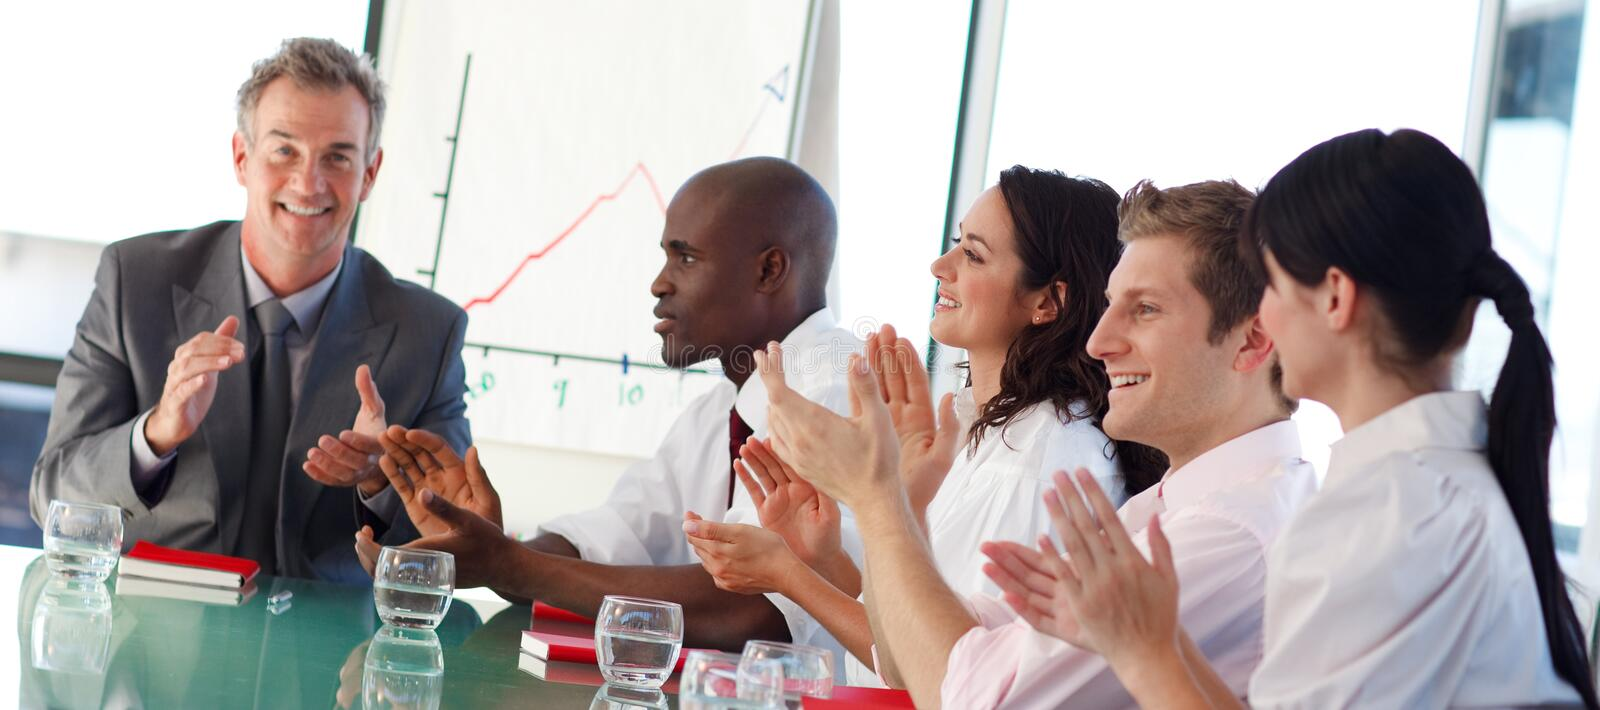 Business People Clapping In A Meeting Stock Photography